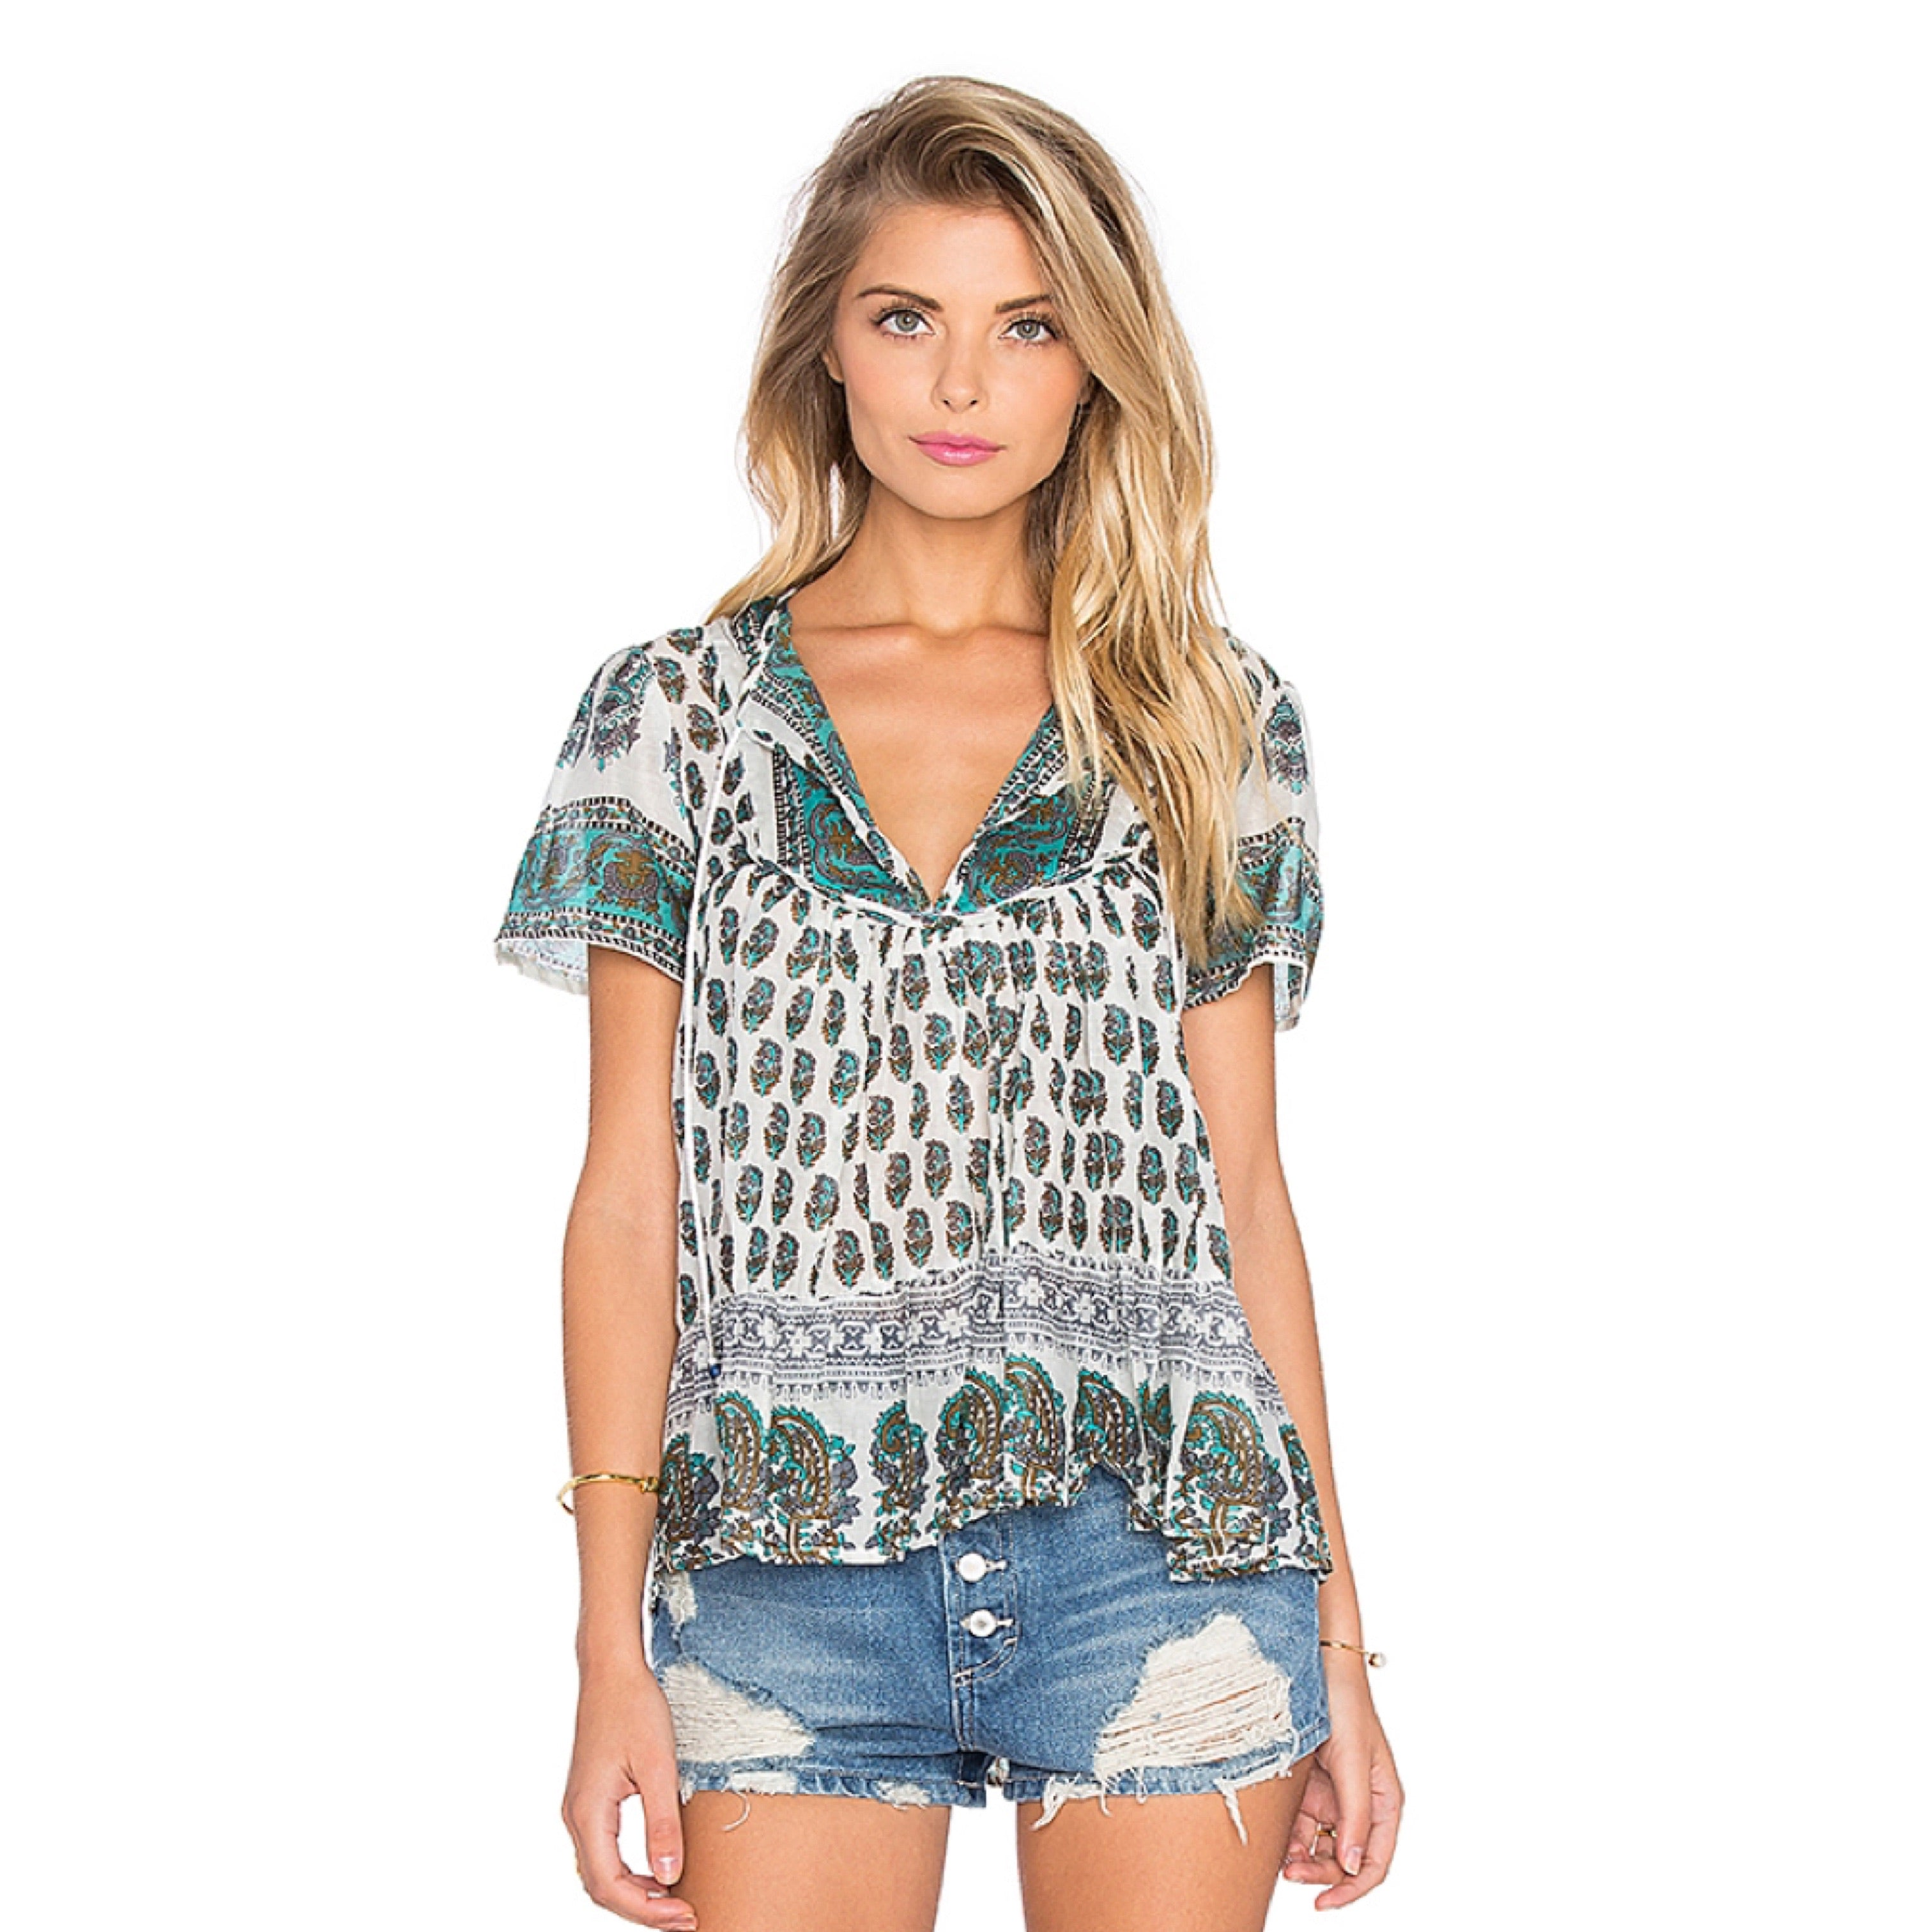 Nomad Dream Blouse in Green